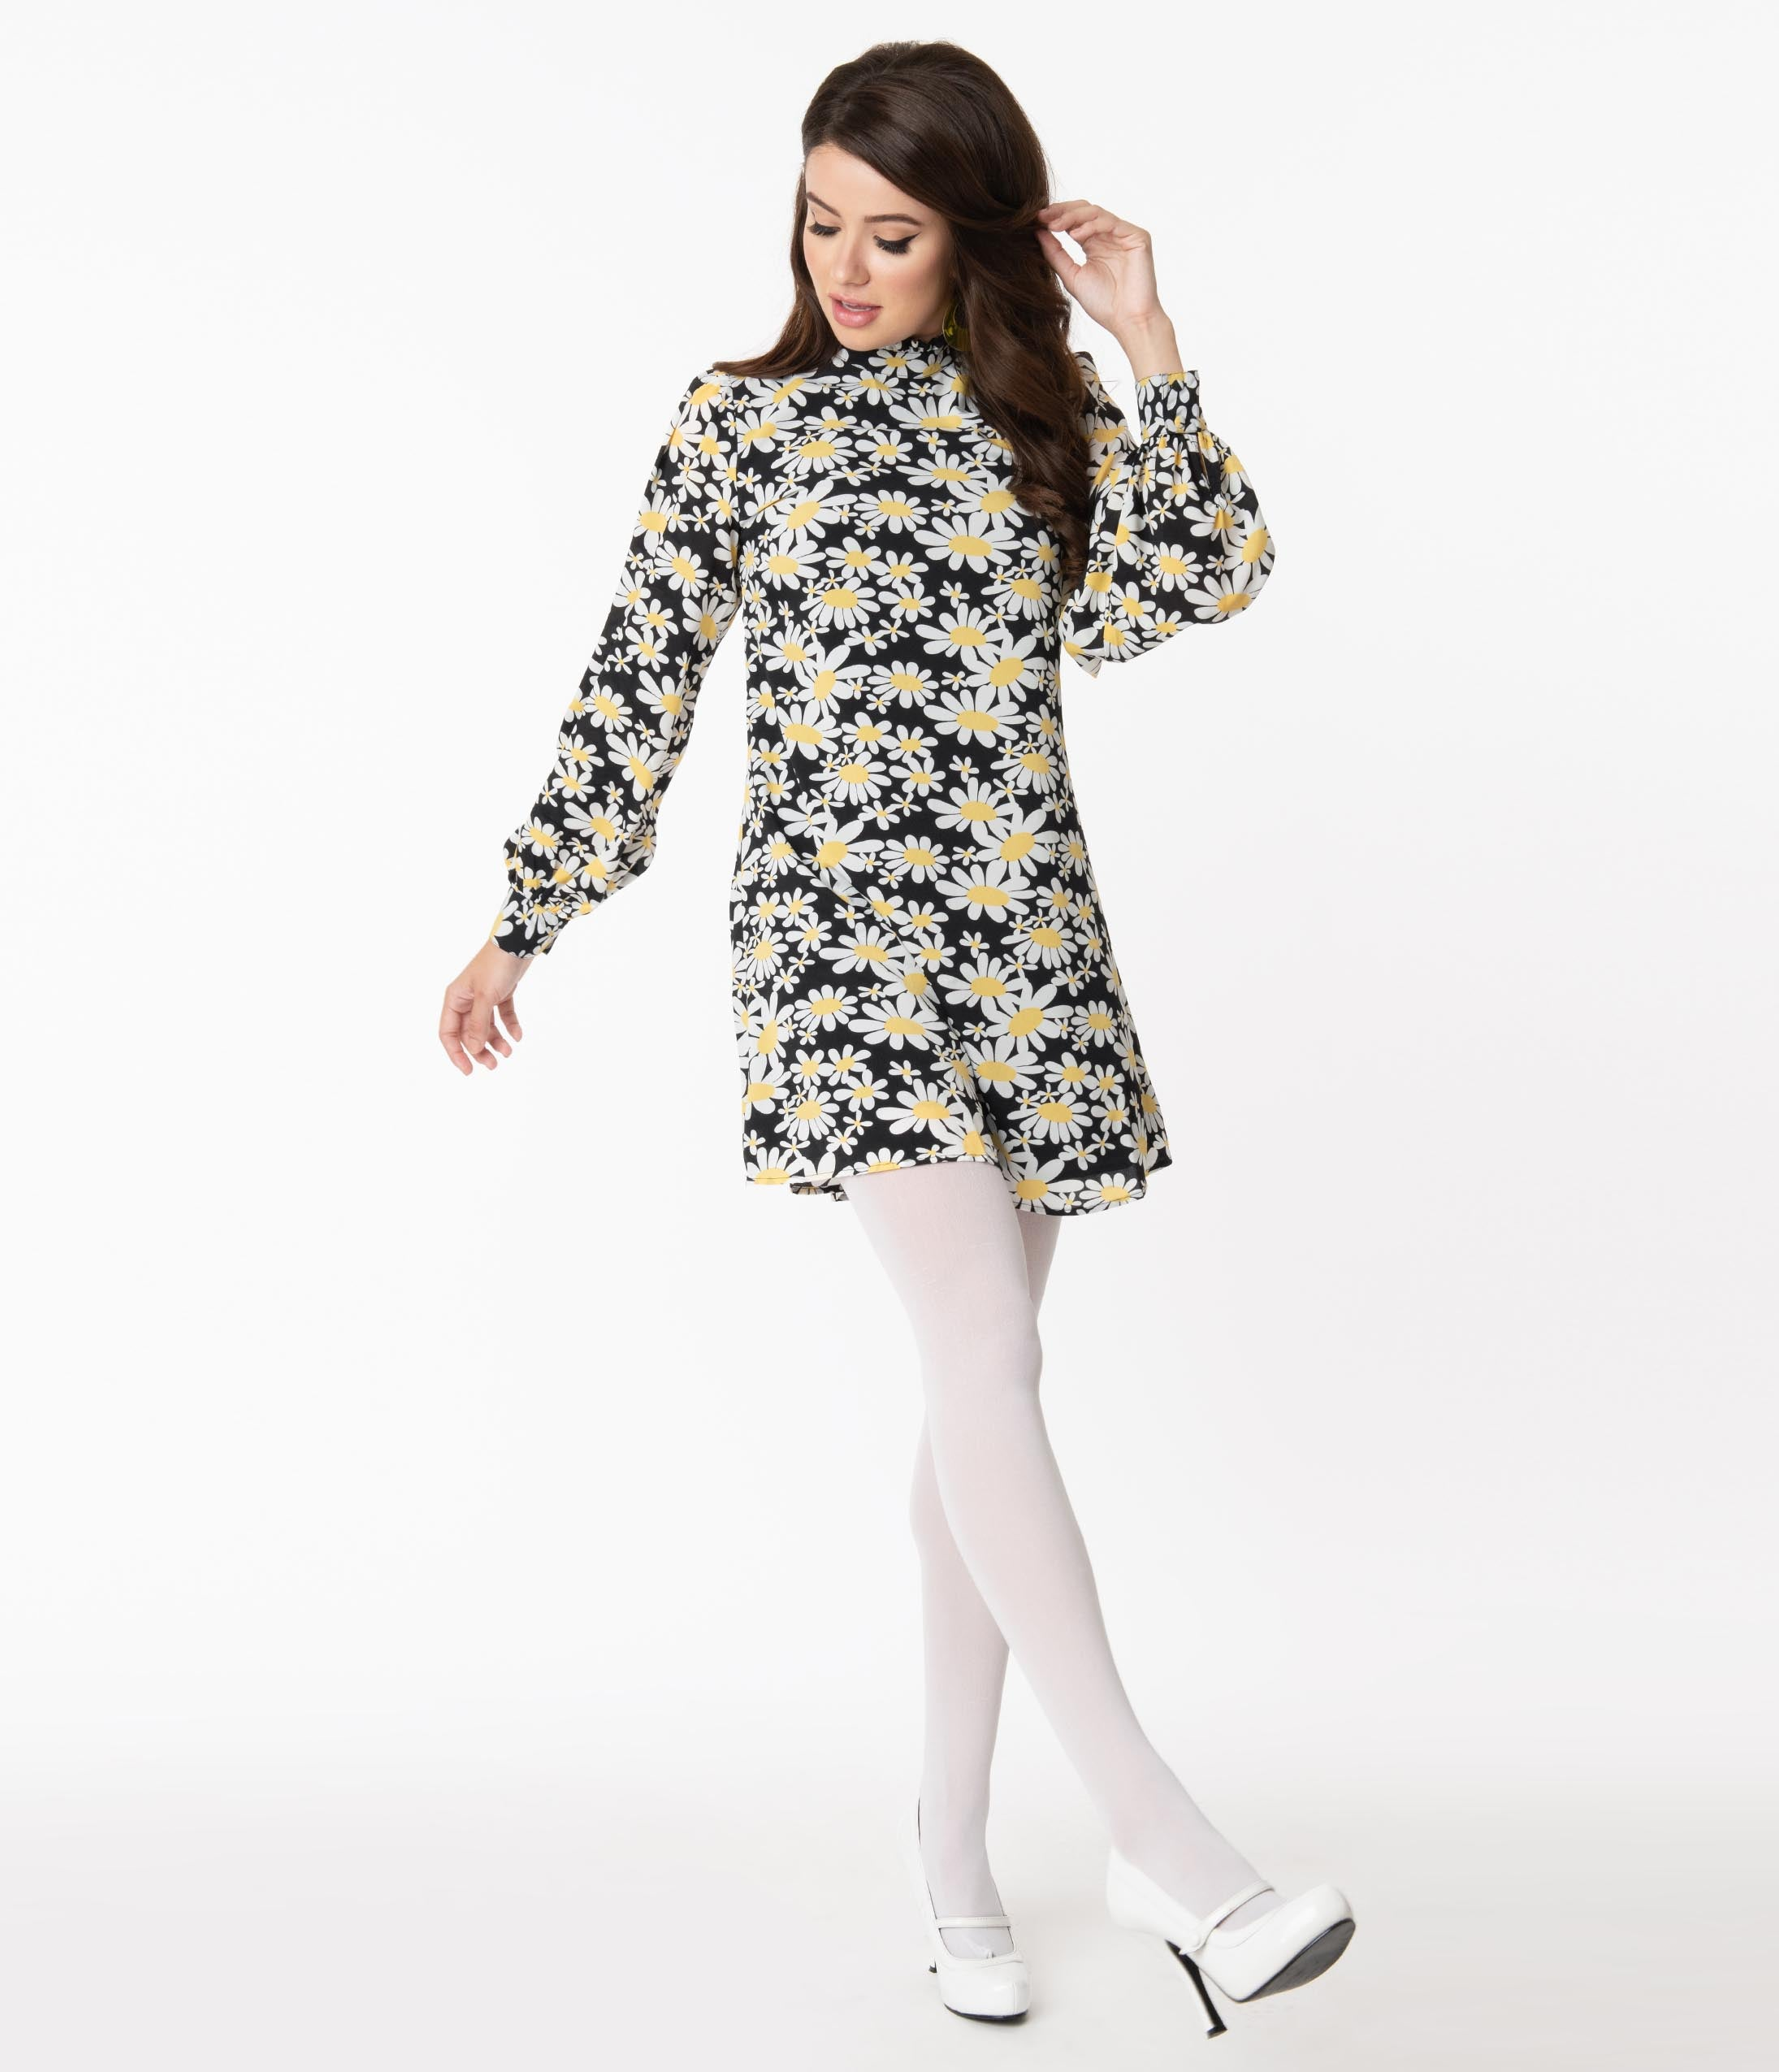 Vintage Style Dresses | Vintage Inspired Dresses Smak Parlour Black Daisy Print Girl Talk Shift Dress $68.00 AT vintagedancer.com